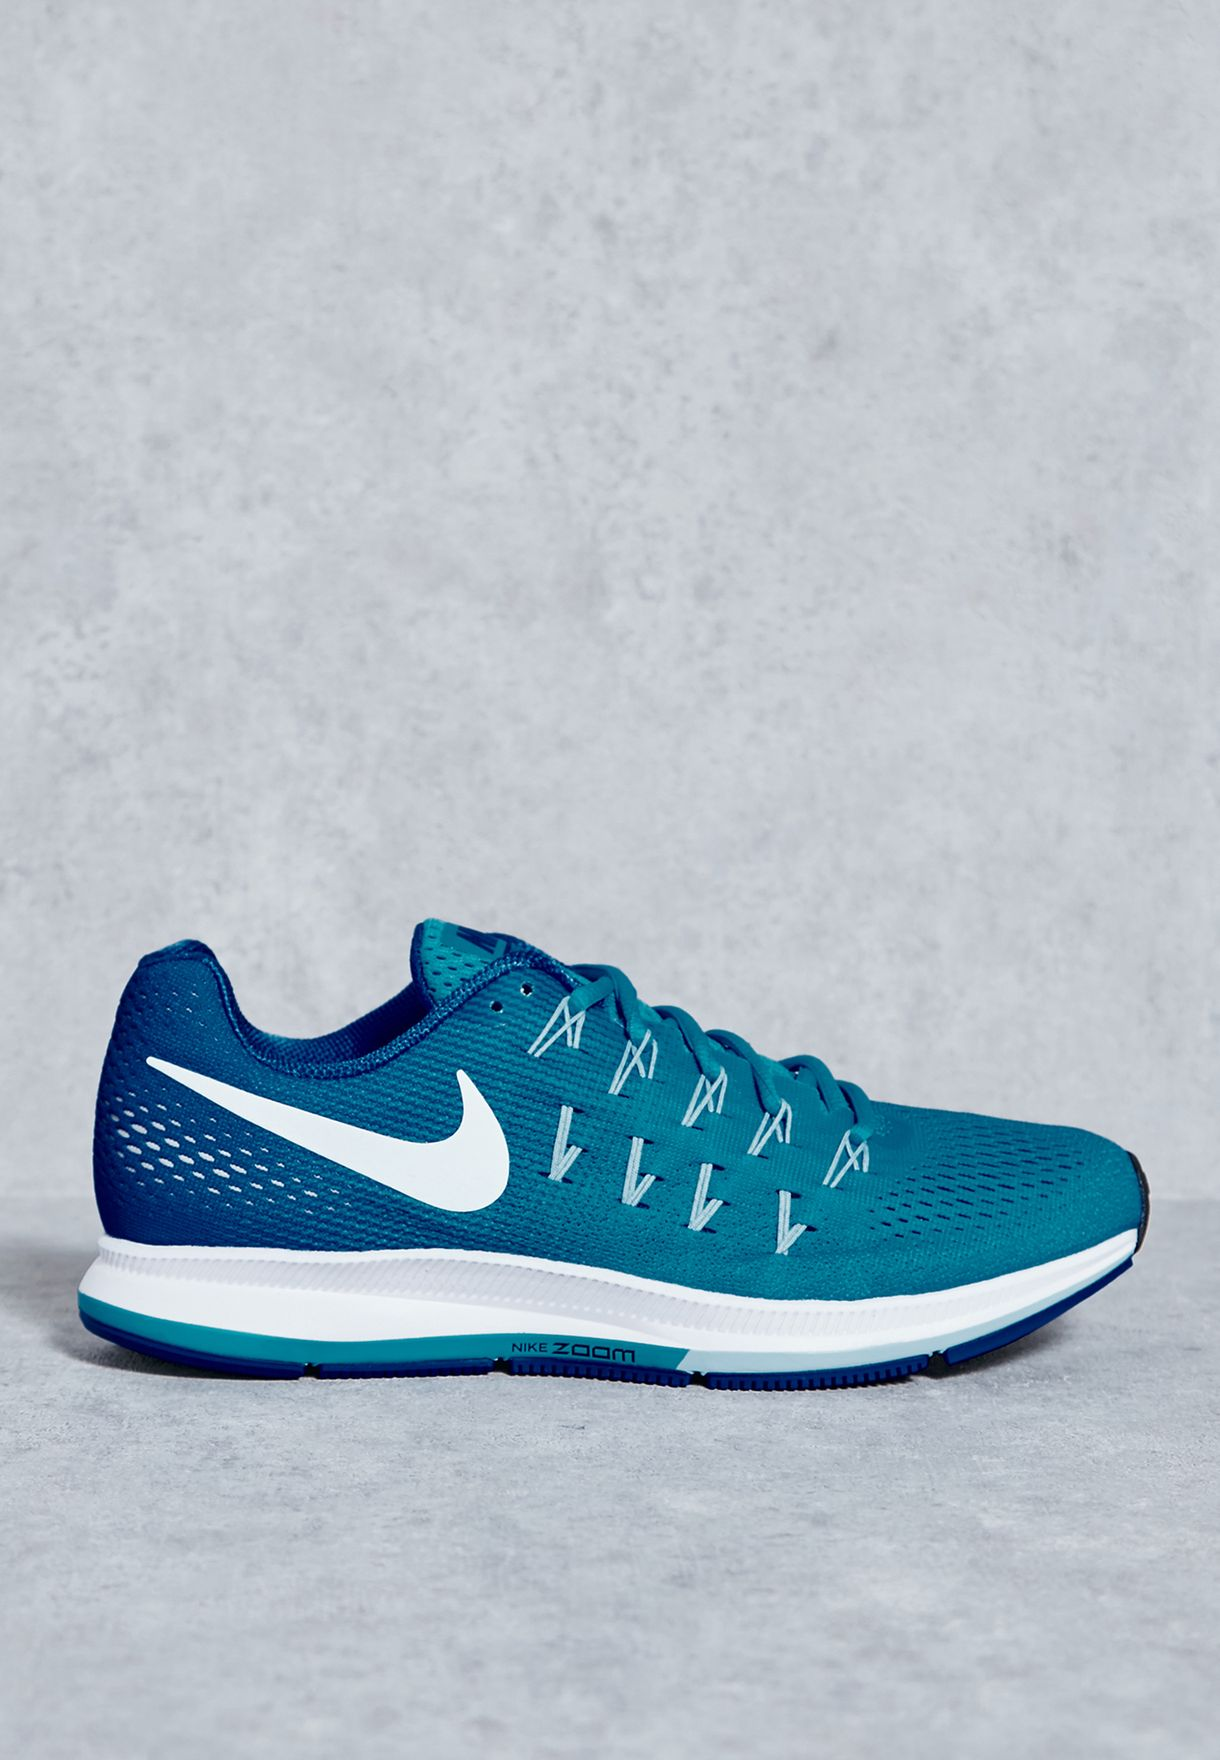 58d4f818d9b Premium Shoes Sports View all · Today s deal New arrivals · 0. Air Zoom  Pegasus 33